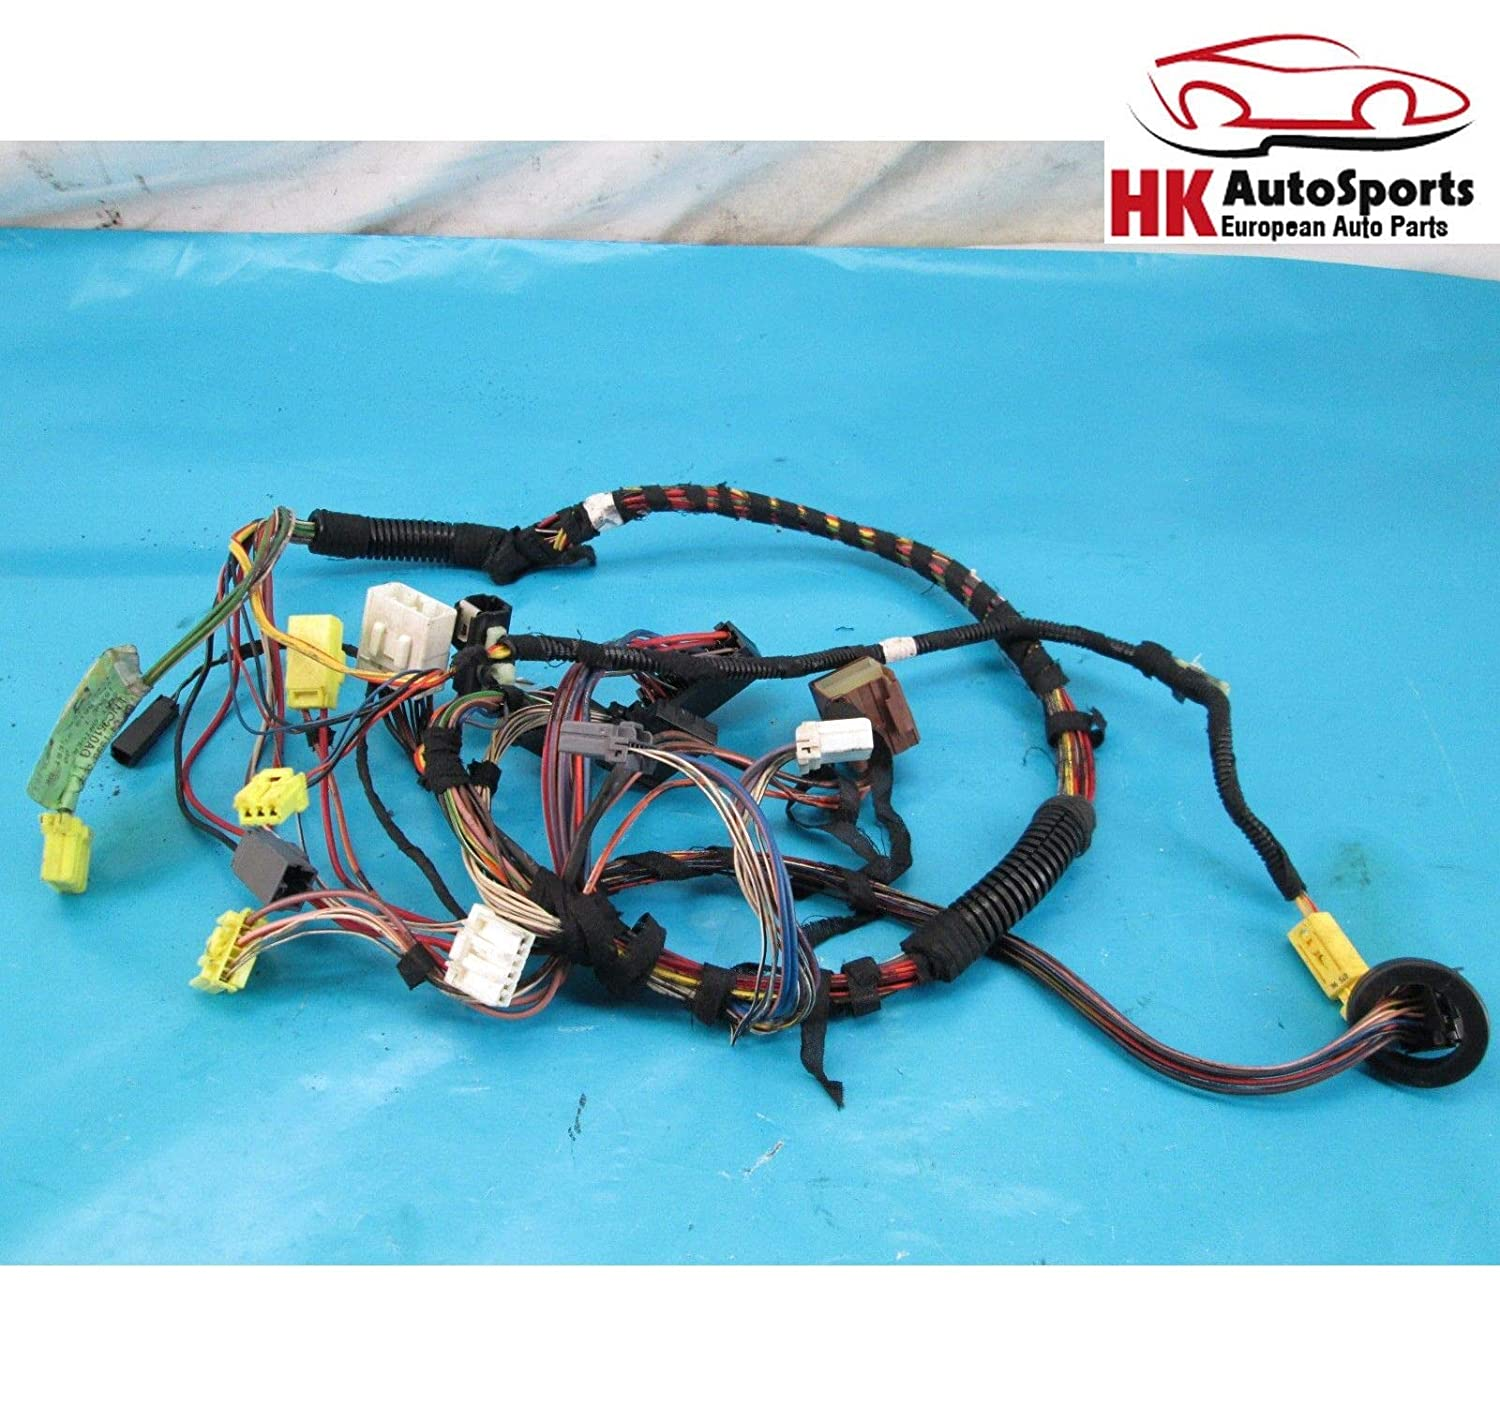 amazon com auto parts lab jaguar vanden plas xj8 xjr front oxygen sensor extension harness jaguar wiring harness #11